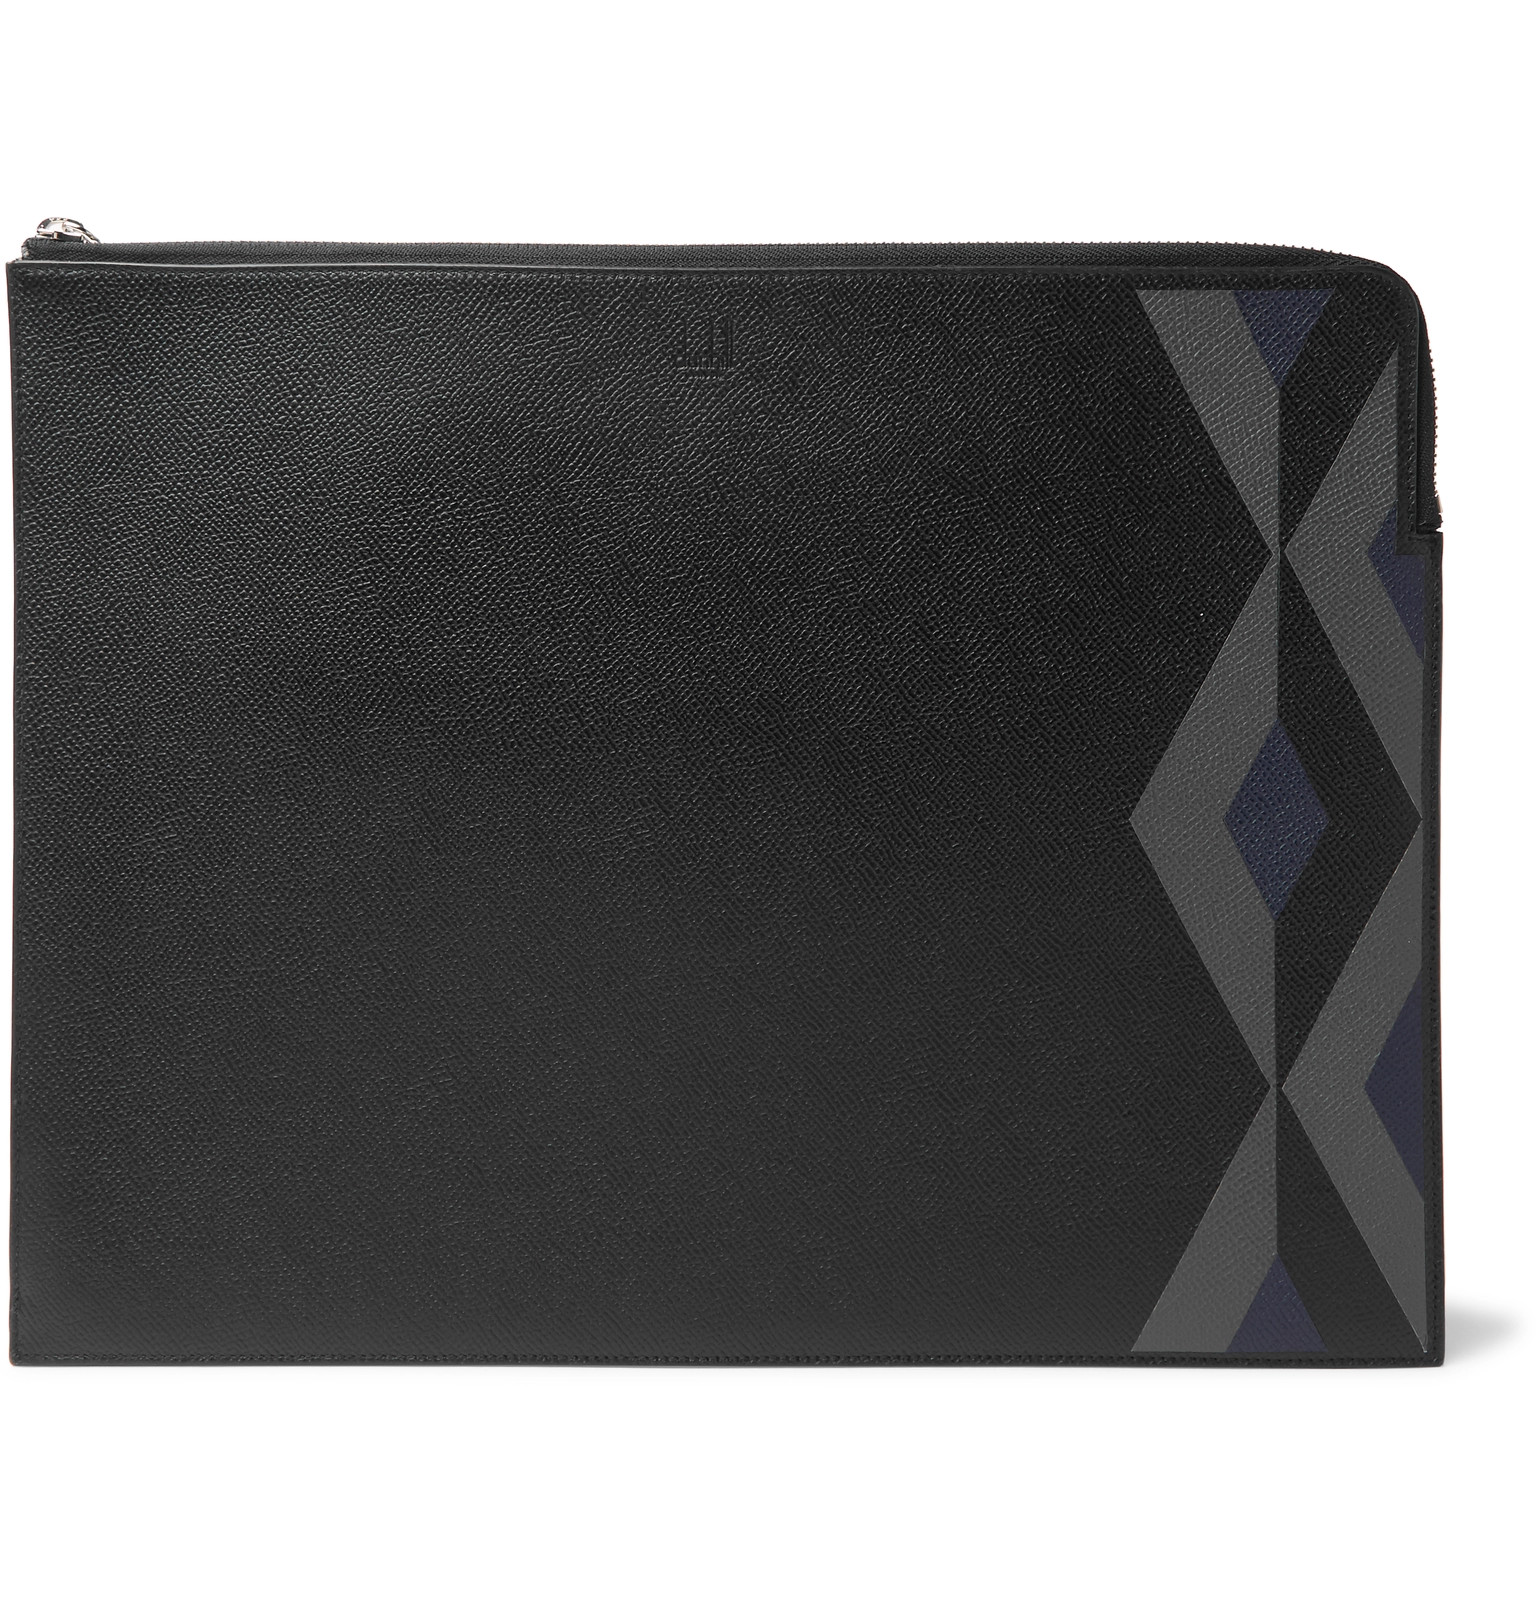 Dunhill Cadogan Printed Full-grain Leather Zip-around Pouch From China Online Perfect Sale Online New Arrival Cheap Price bVDQZ